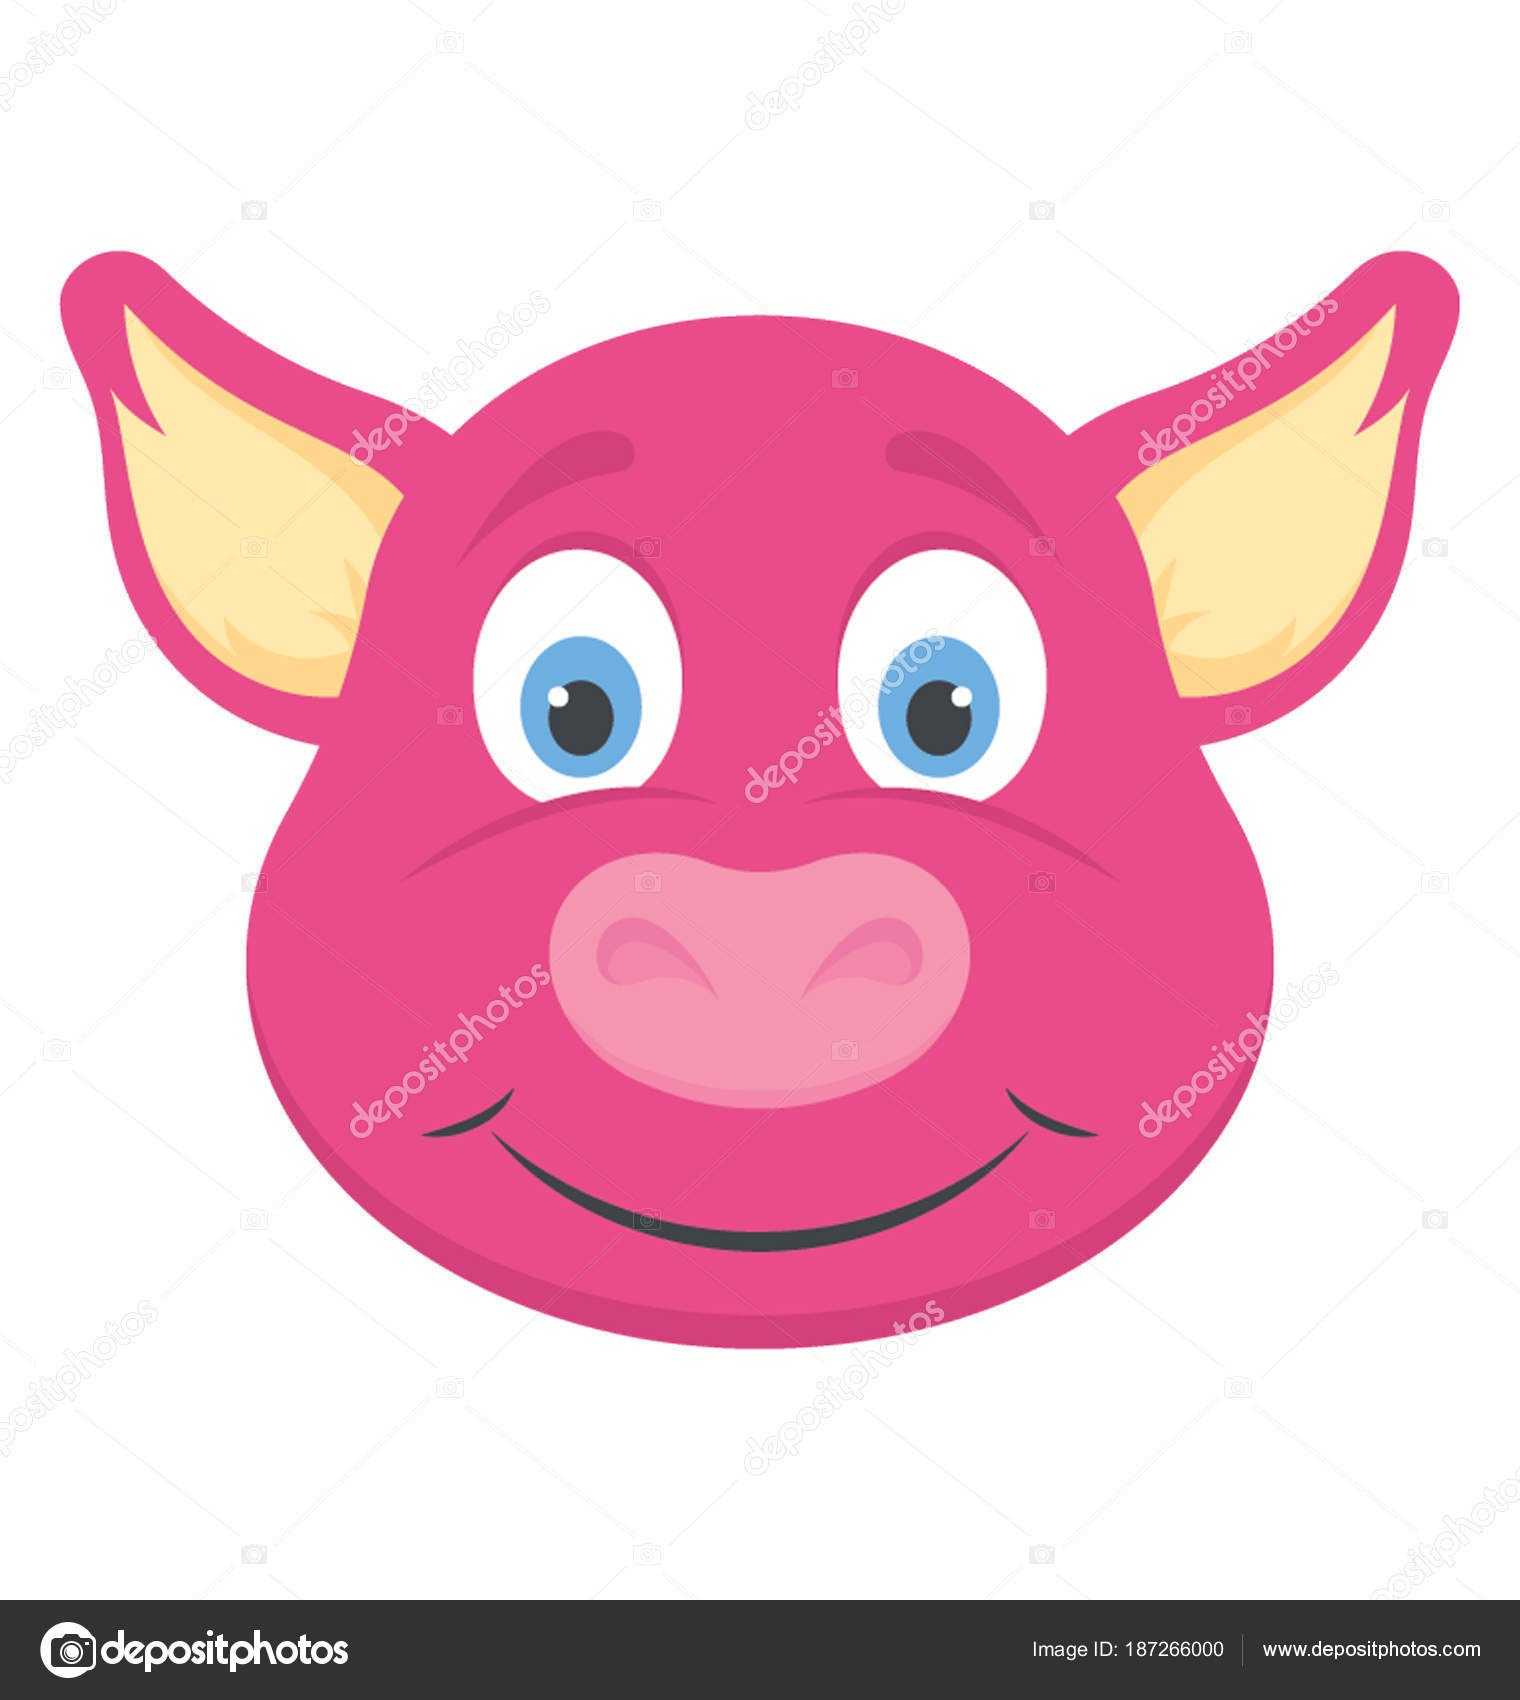 A Cute Smiling Baby Pig Face Wild Animal Vector By Vectorspoint